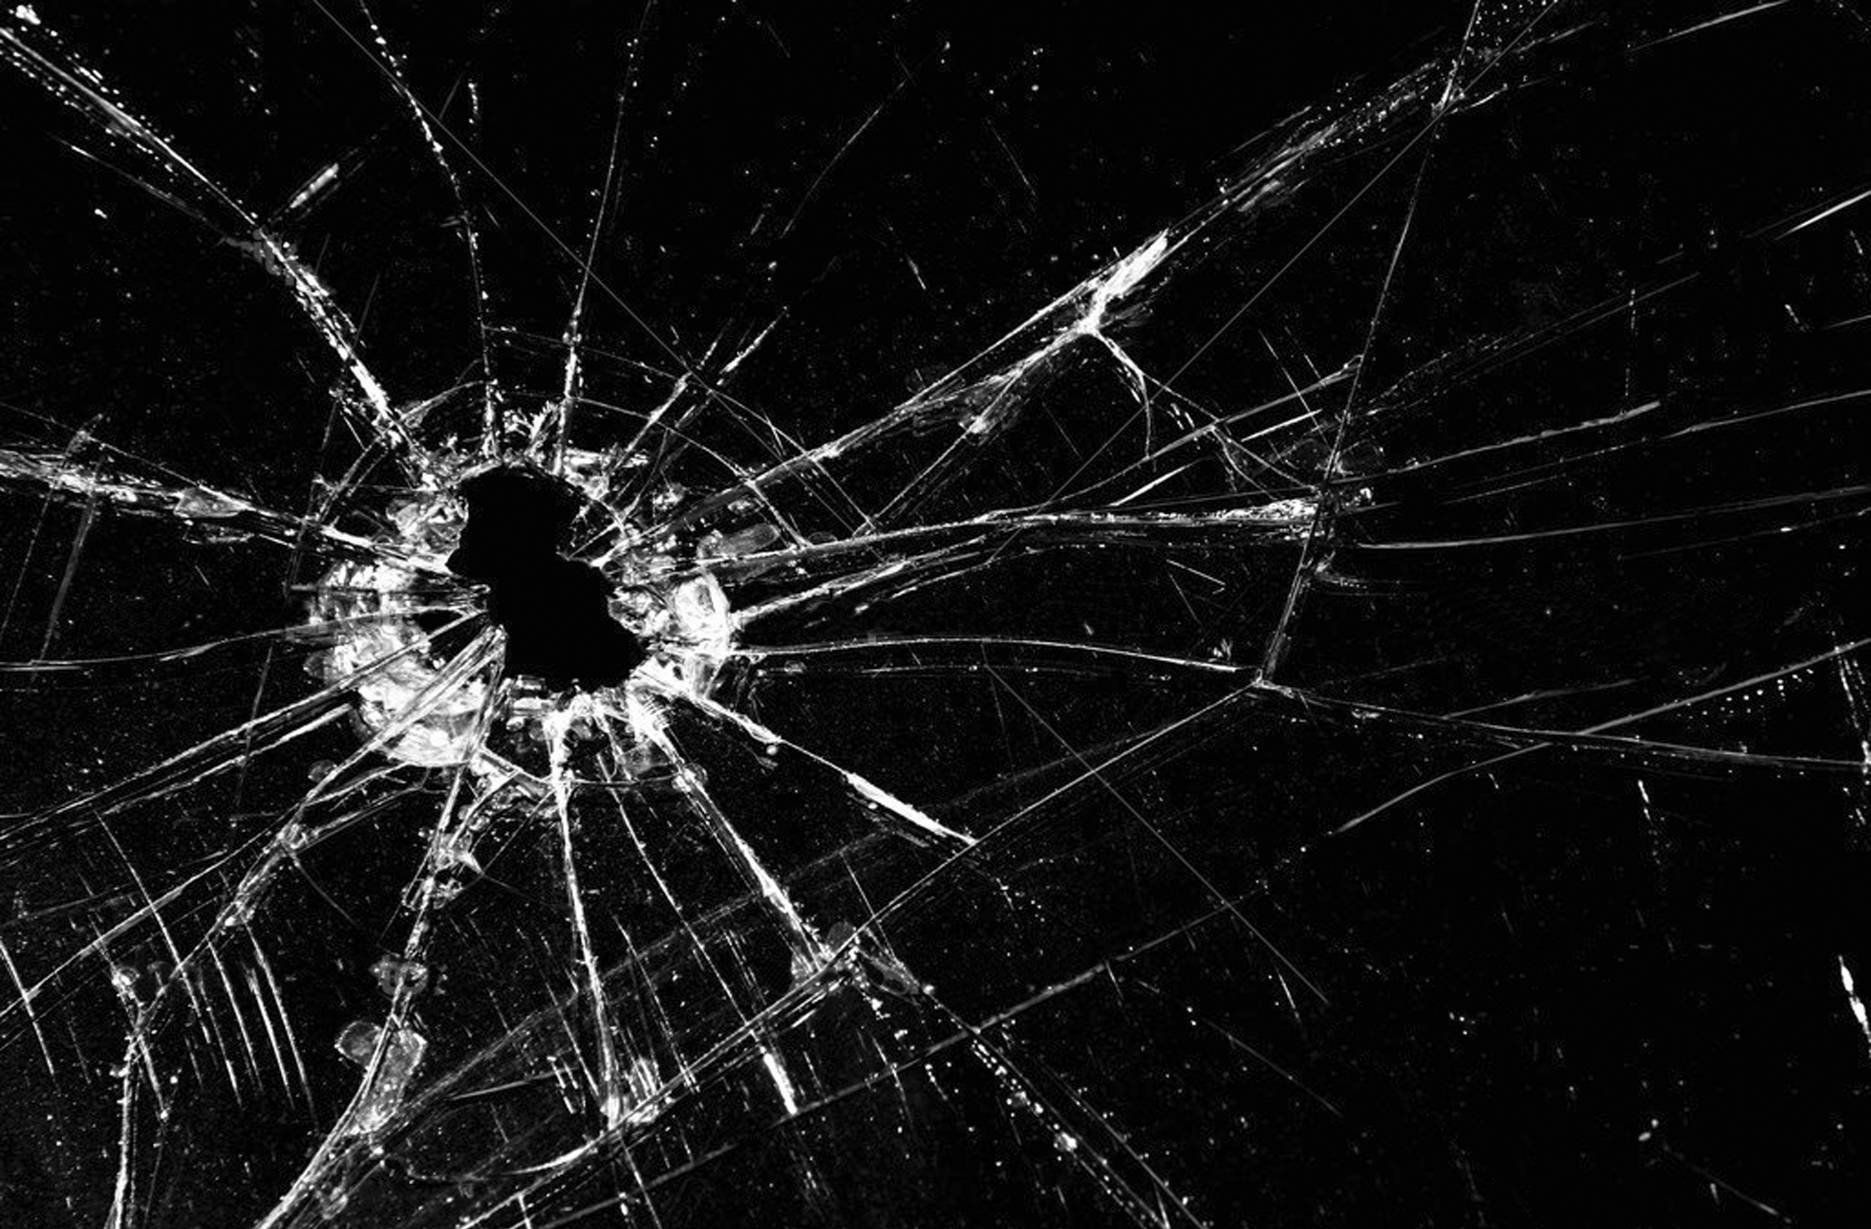 Broken Glass Wallpaper Hd Free Download Broken Glass Wallpaper